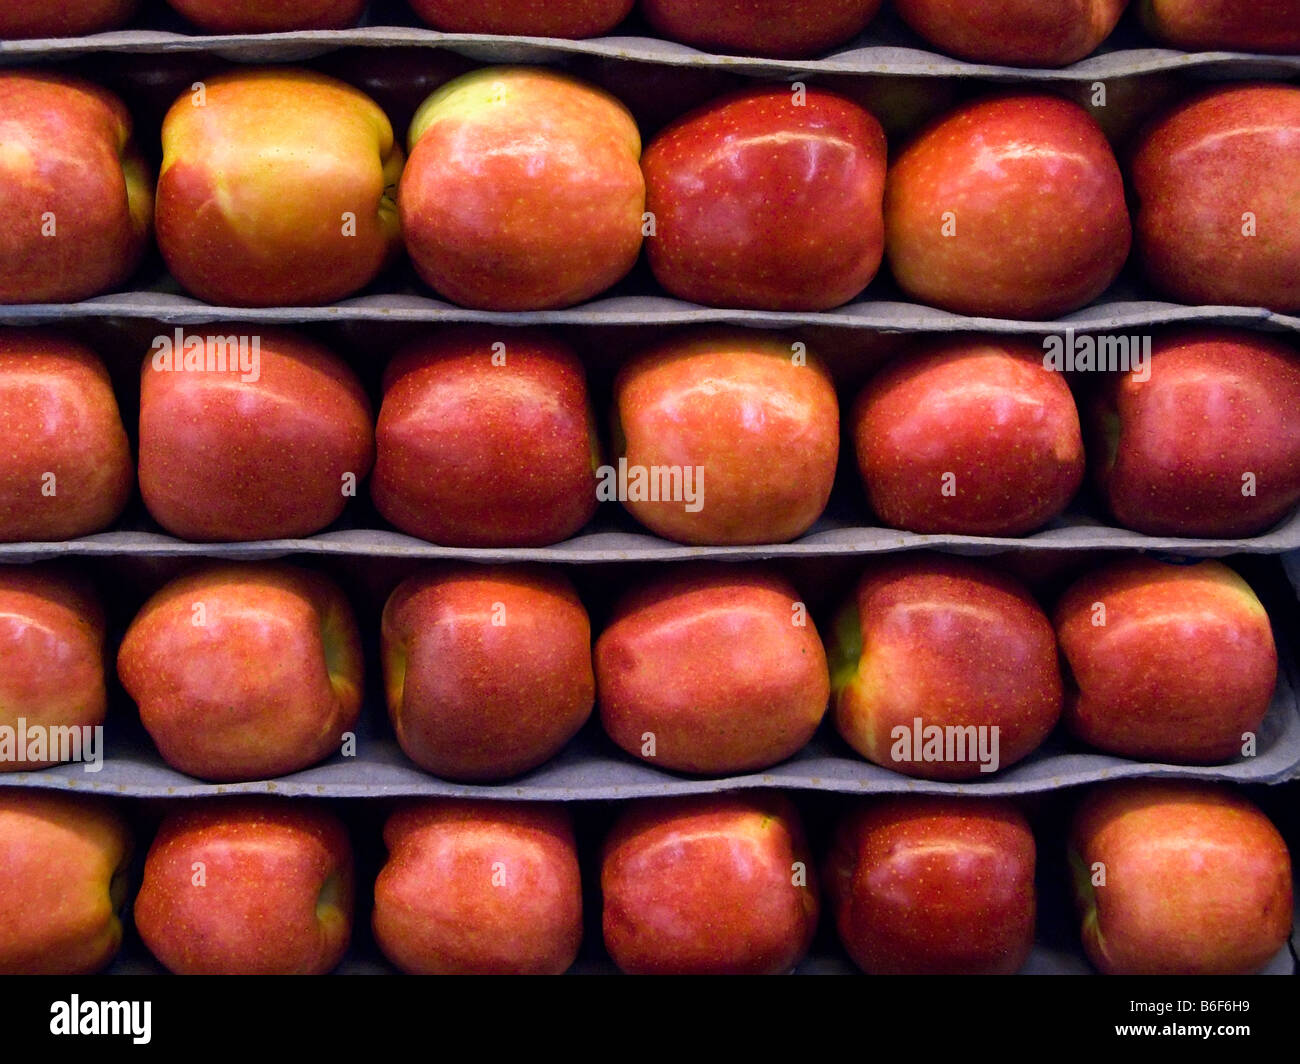 Stacked rows of Braeburn Apples in food market - Stock Image